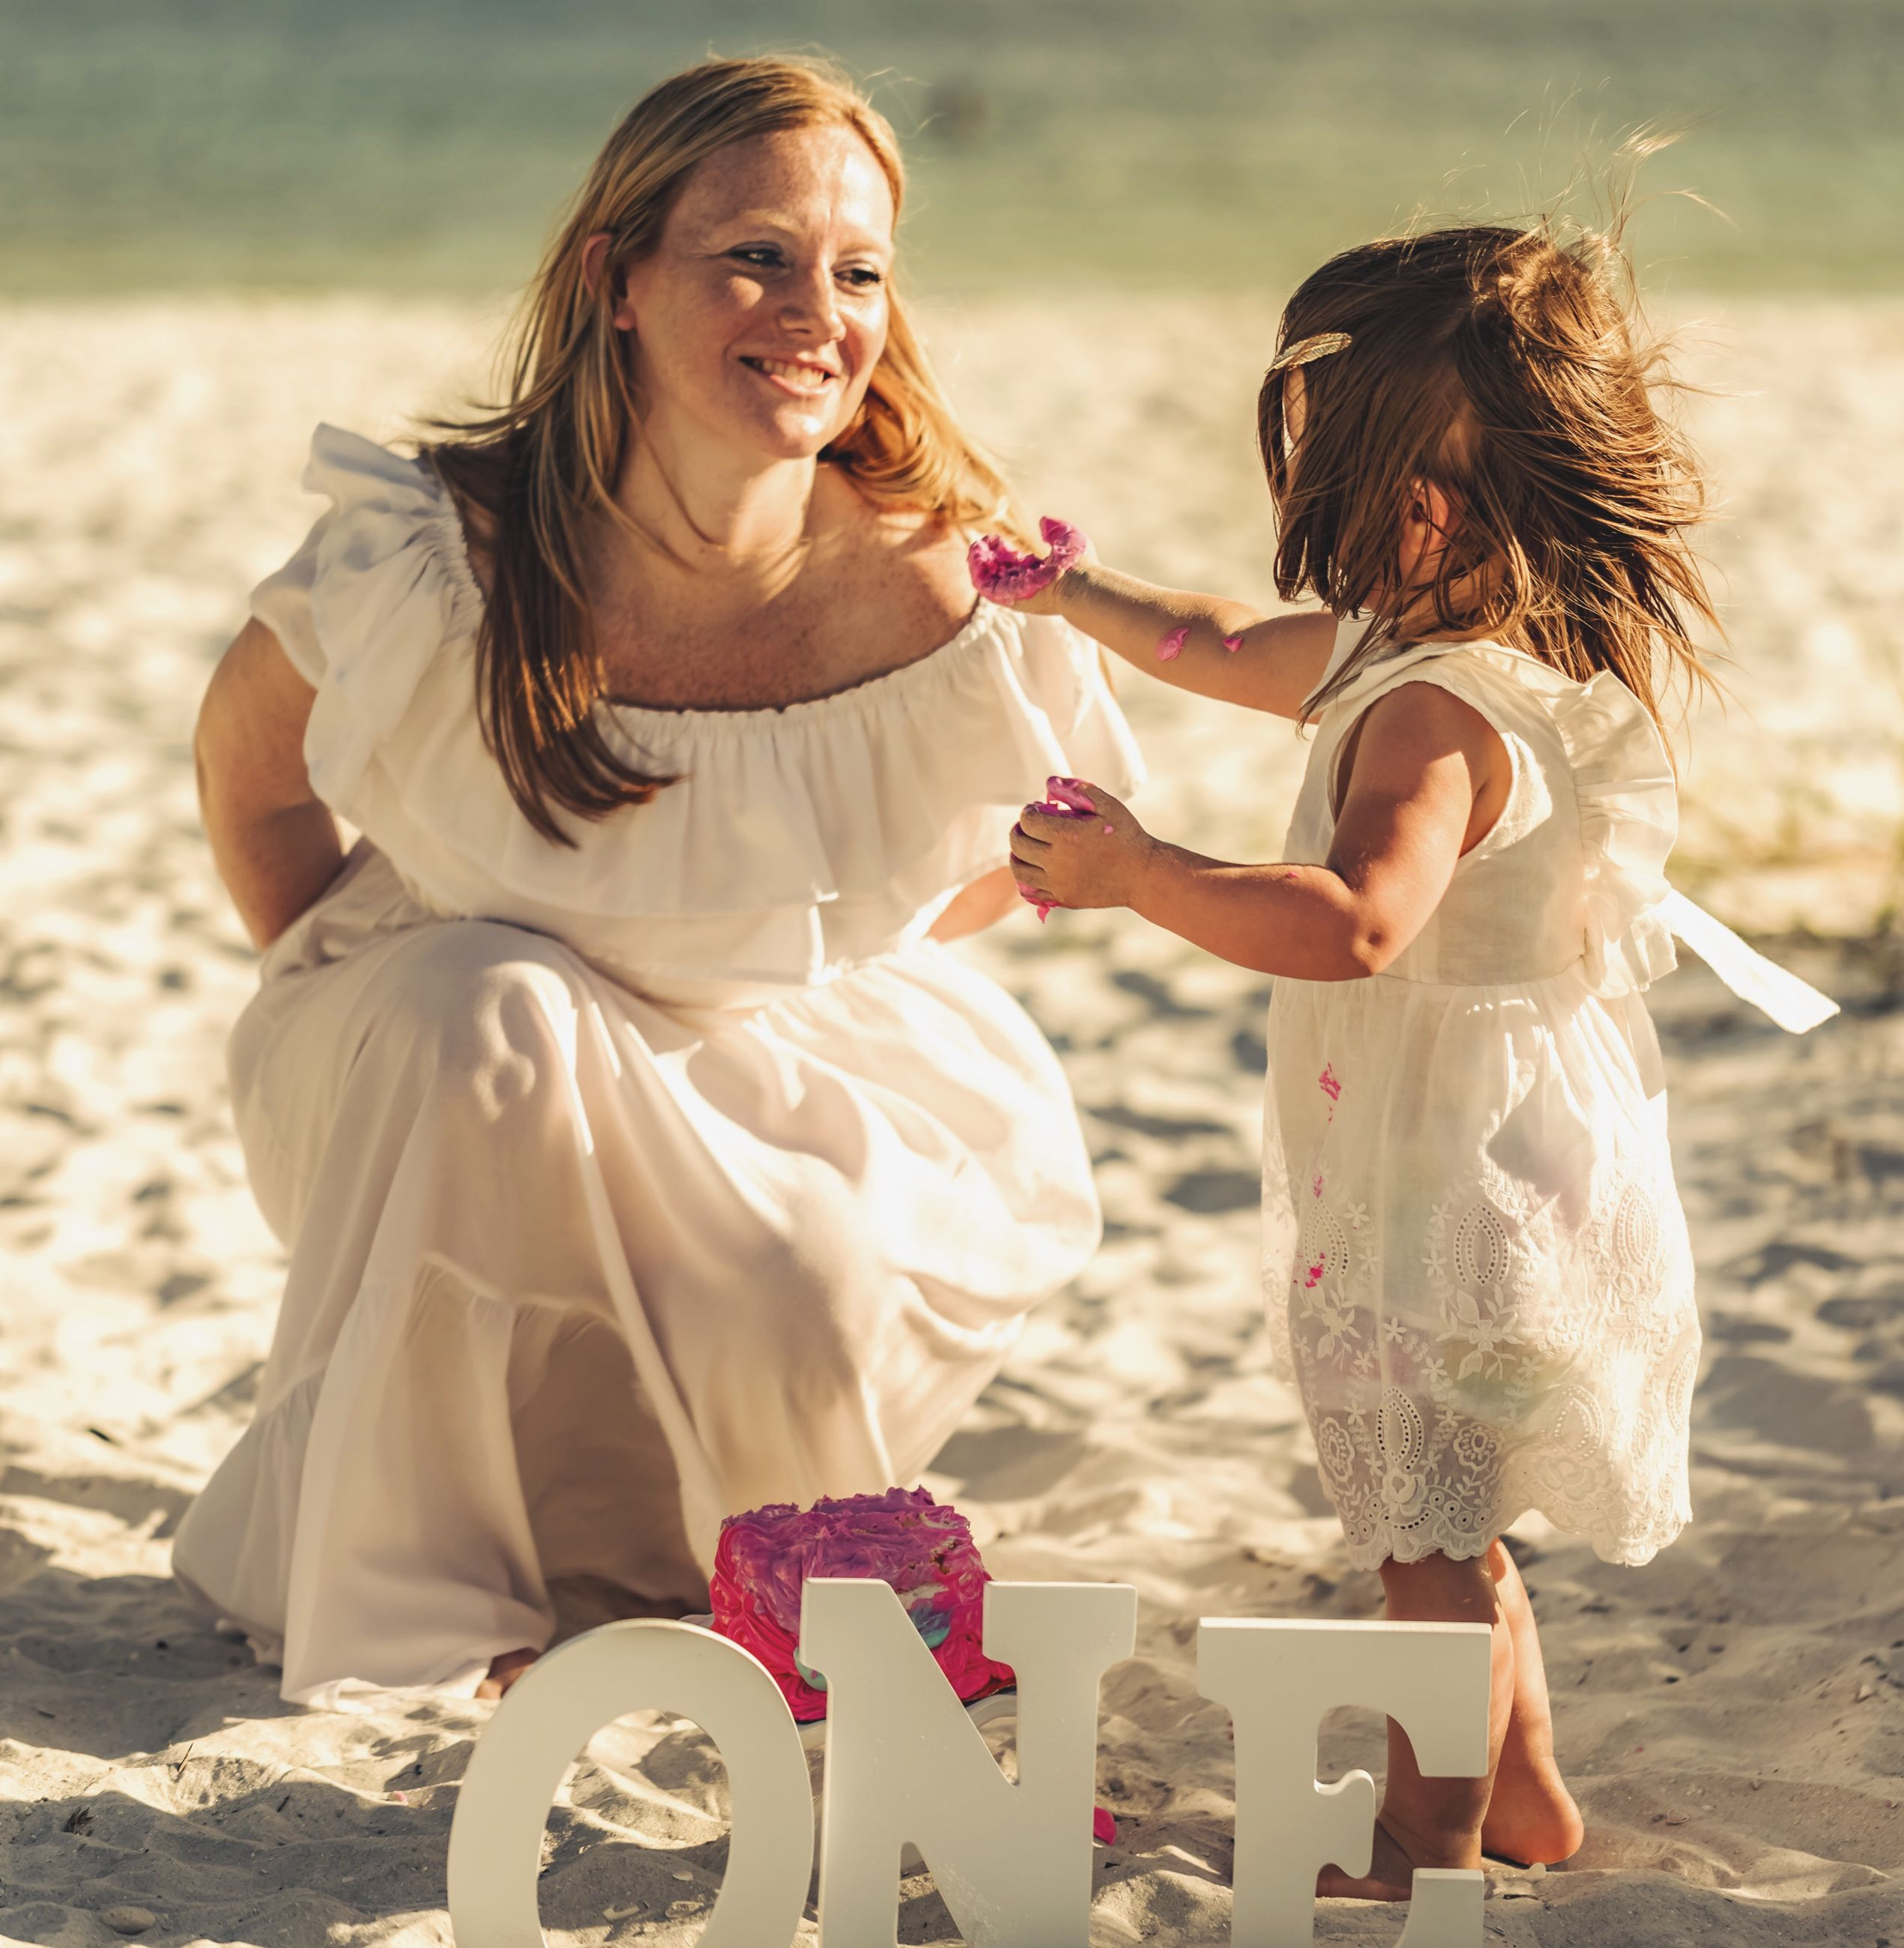 two people, land, real people, women, togetherness, leisure activity, lifestyles, beach, females, nature, adult, emotion, girls, sunlight, child, love, bonding, young women, people, positive emotion, hairstyle, outdoors